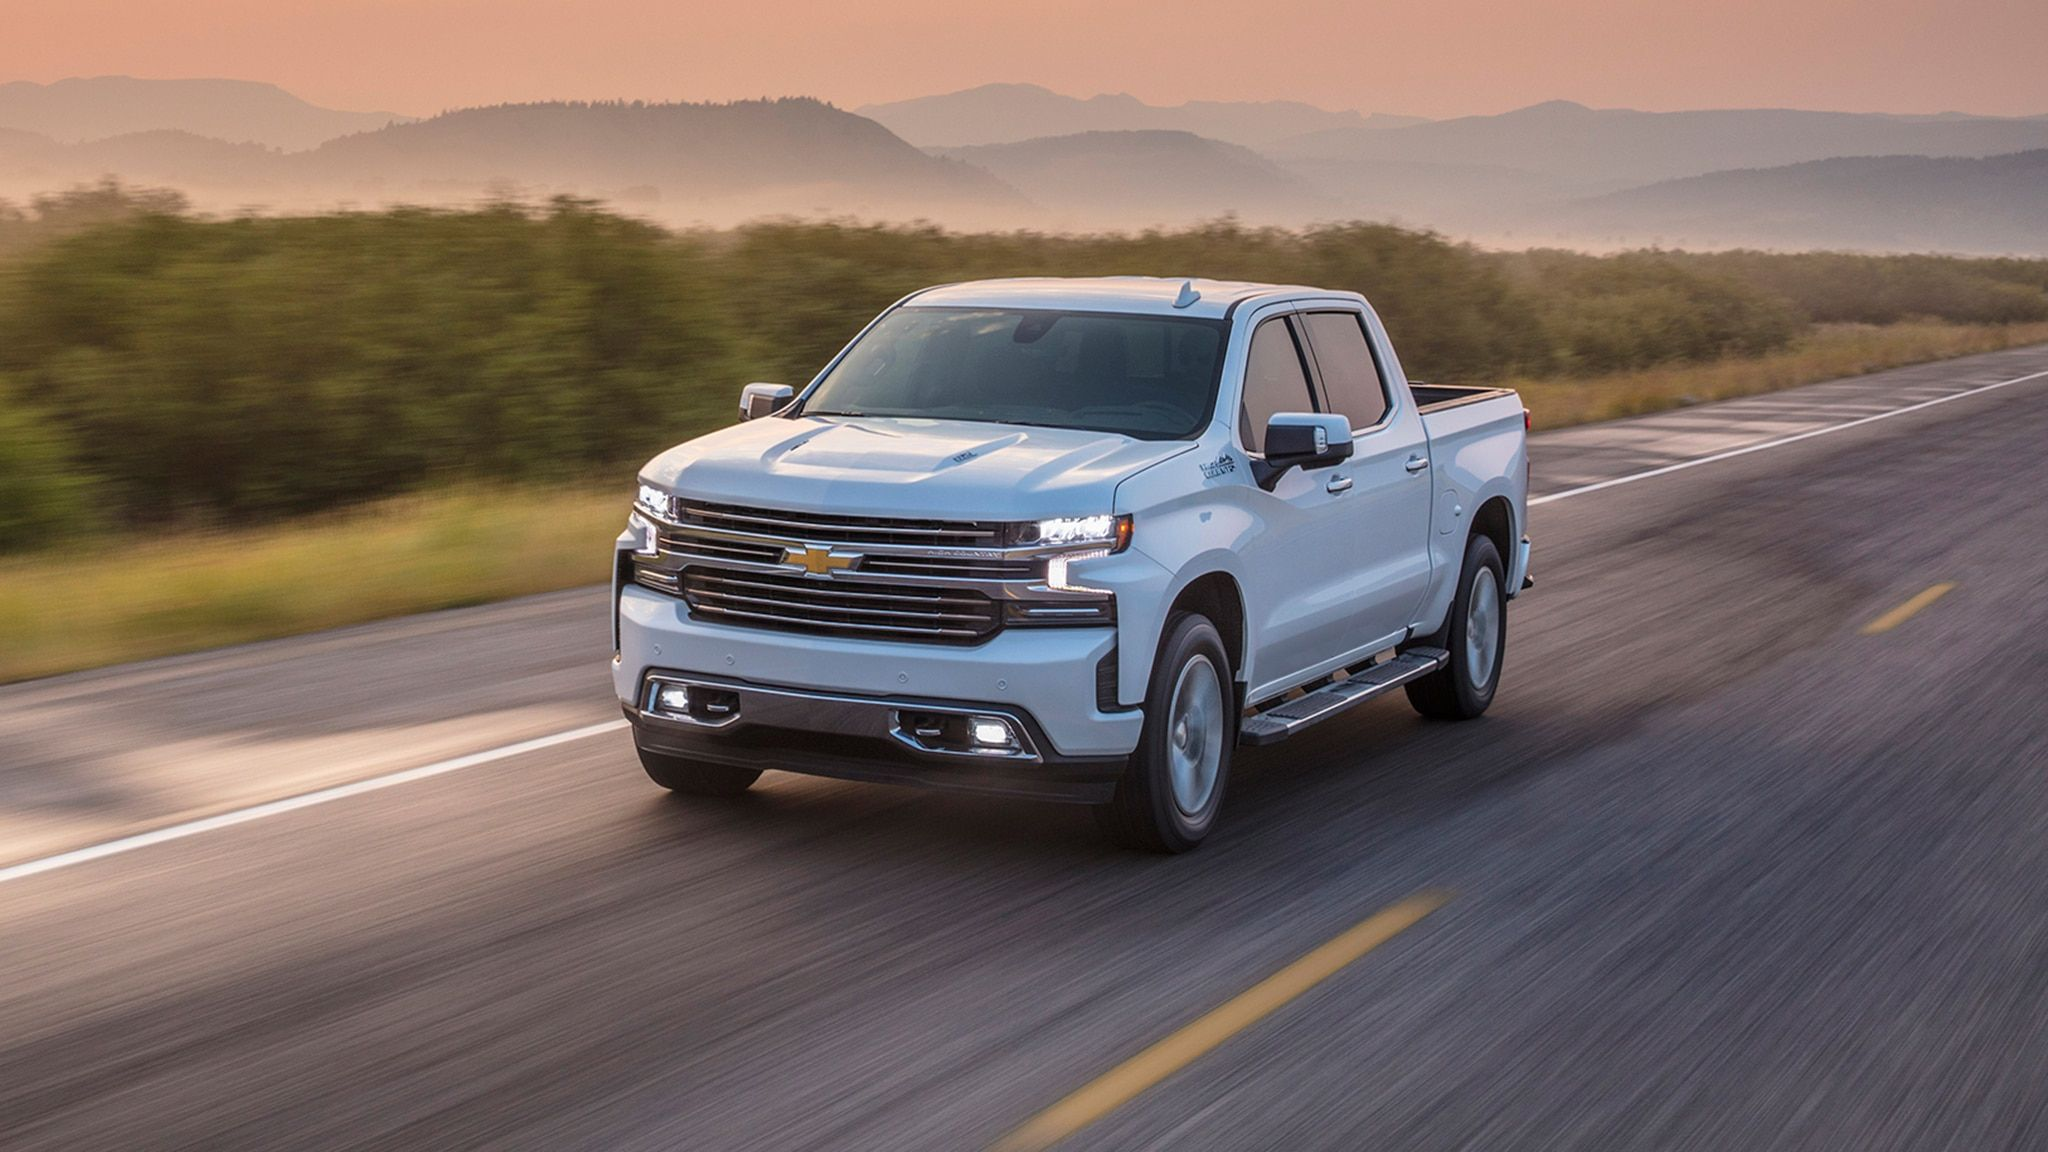 2019 Chevy Silverado High Country Price Details Specs Release Date